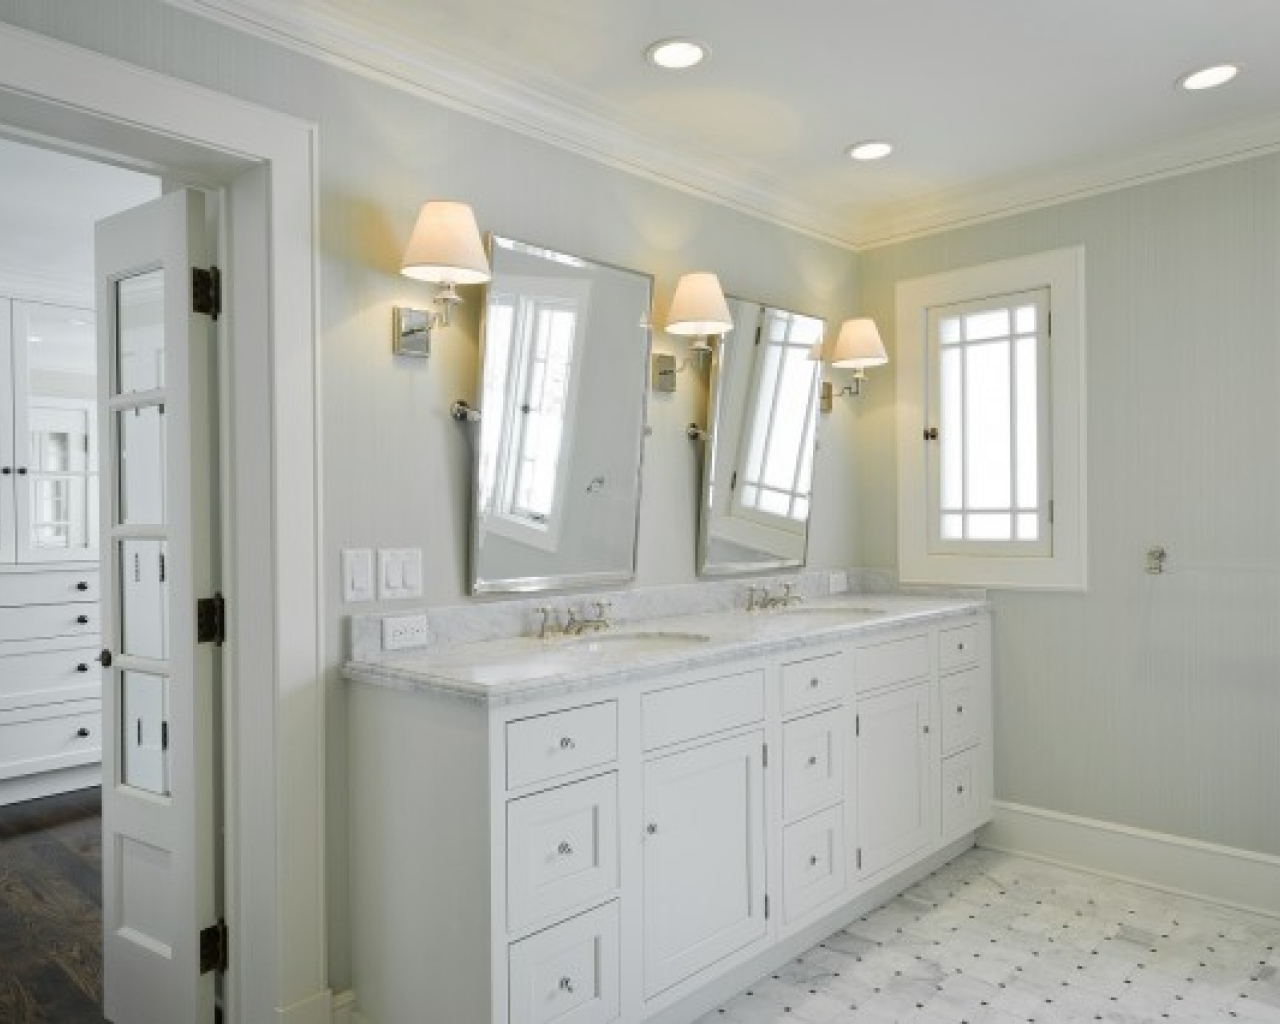 Newest Wall Mirrors For Bathroom Vanities With Tilting Bathroom Wall Mirror Tilt Bathroom Vanity Mirrors (View 6 of 20)